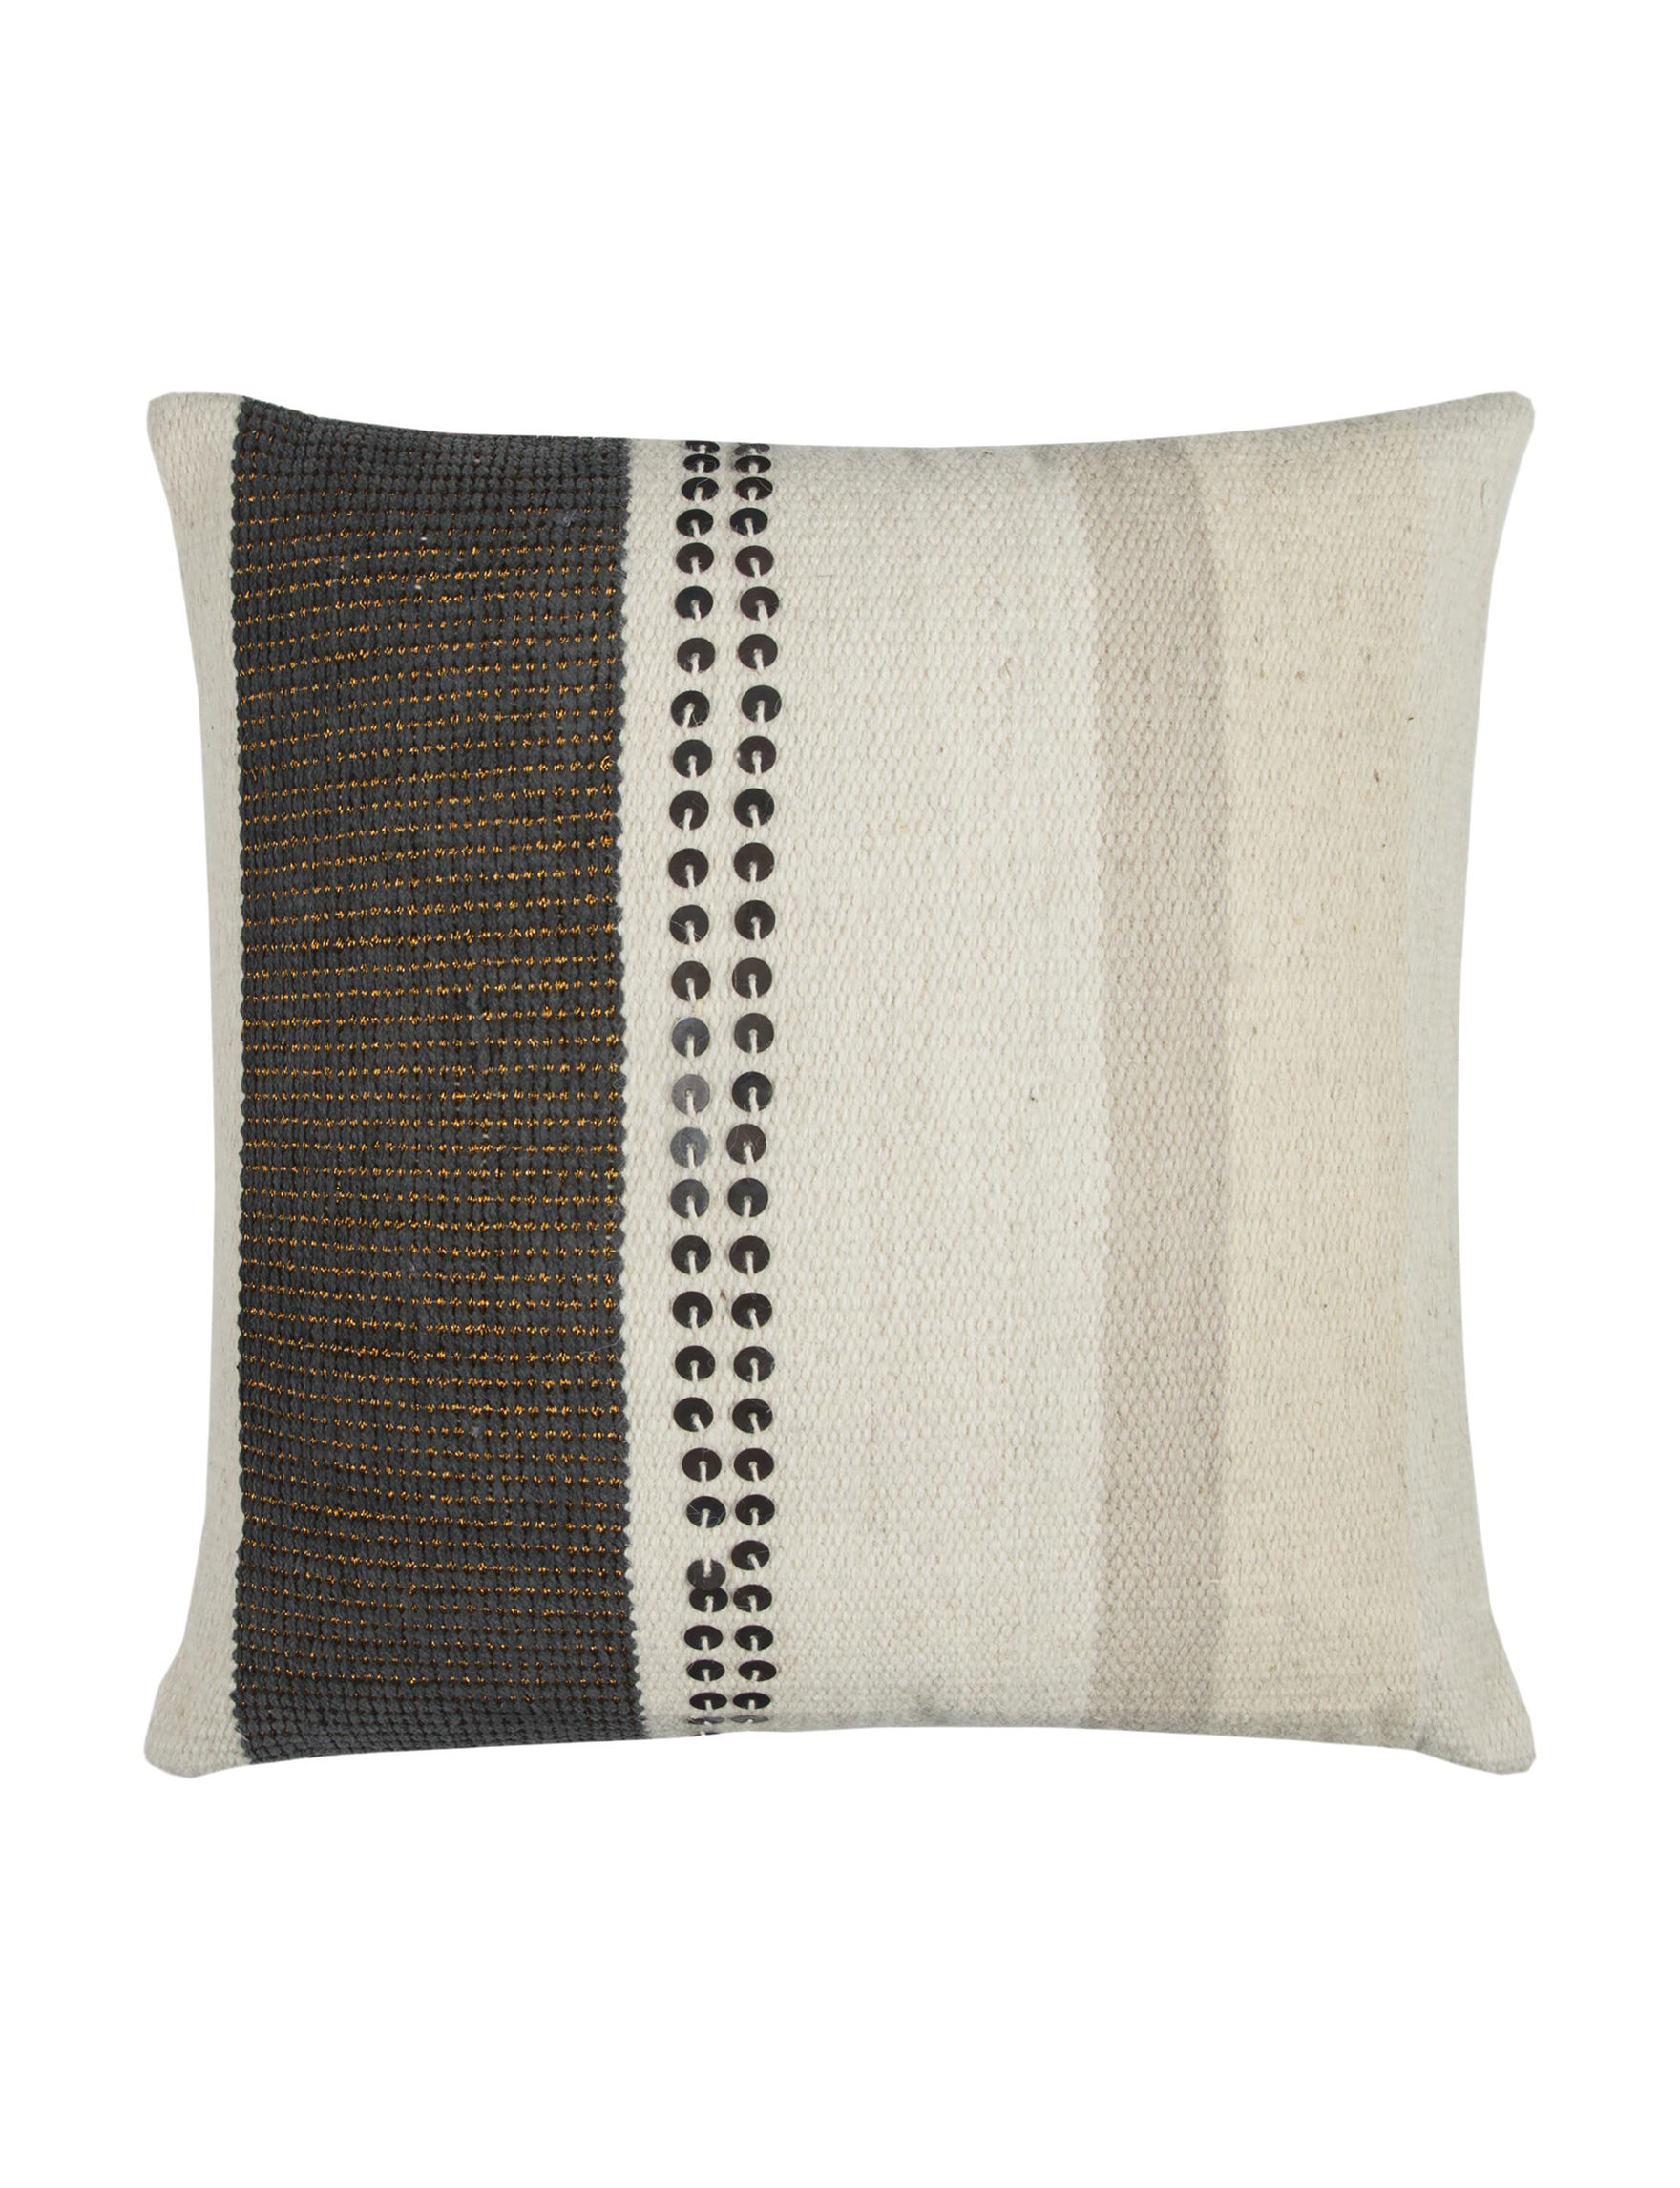 Rizzy Home Beige / Brown Decorative Pillows